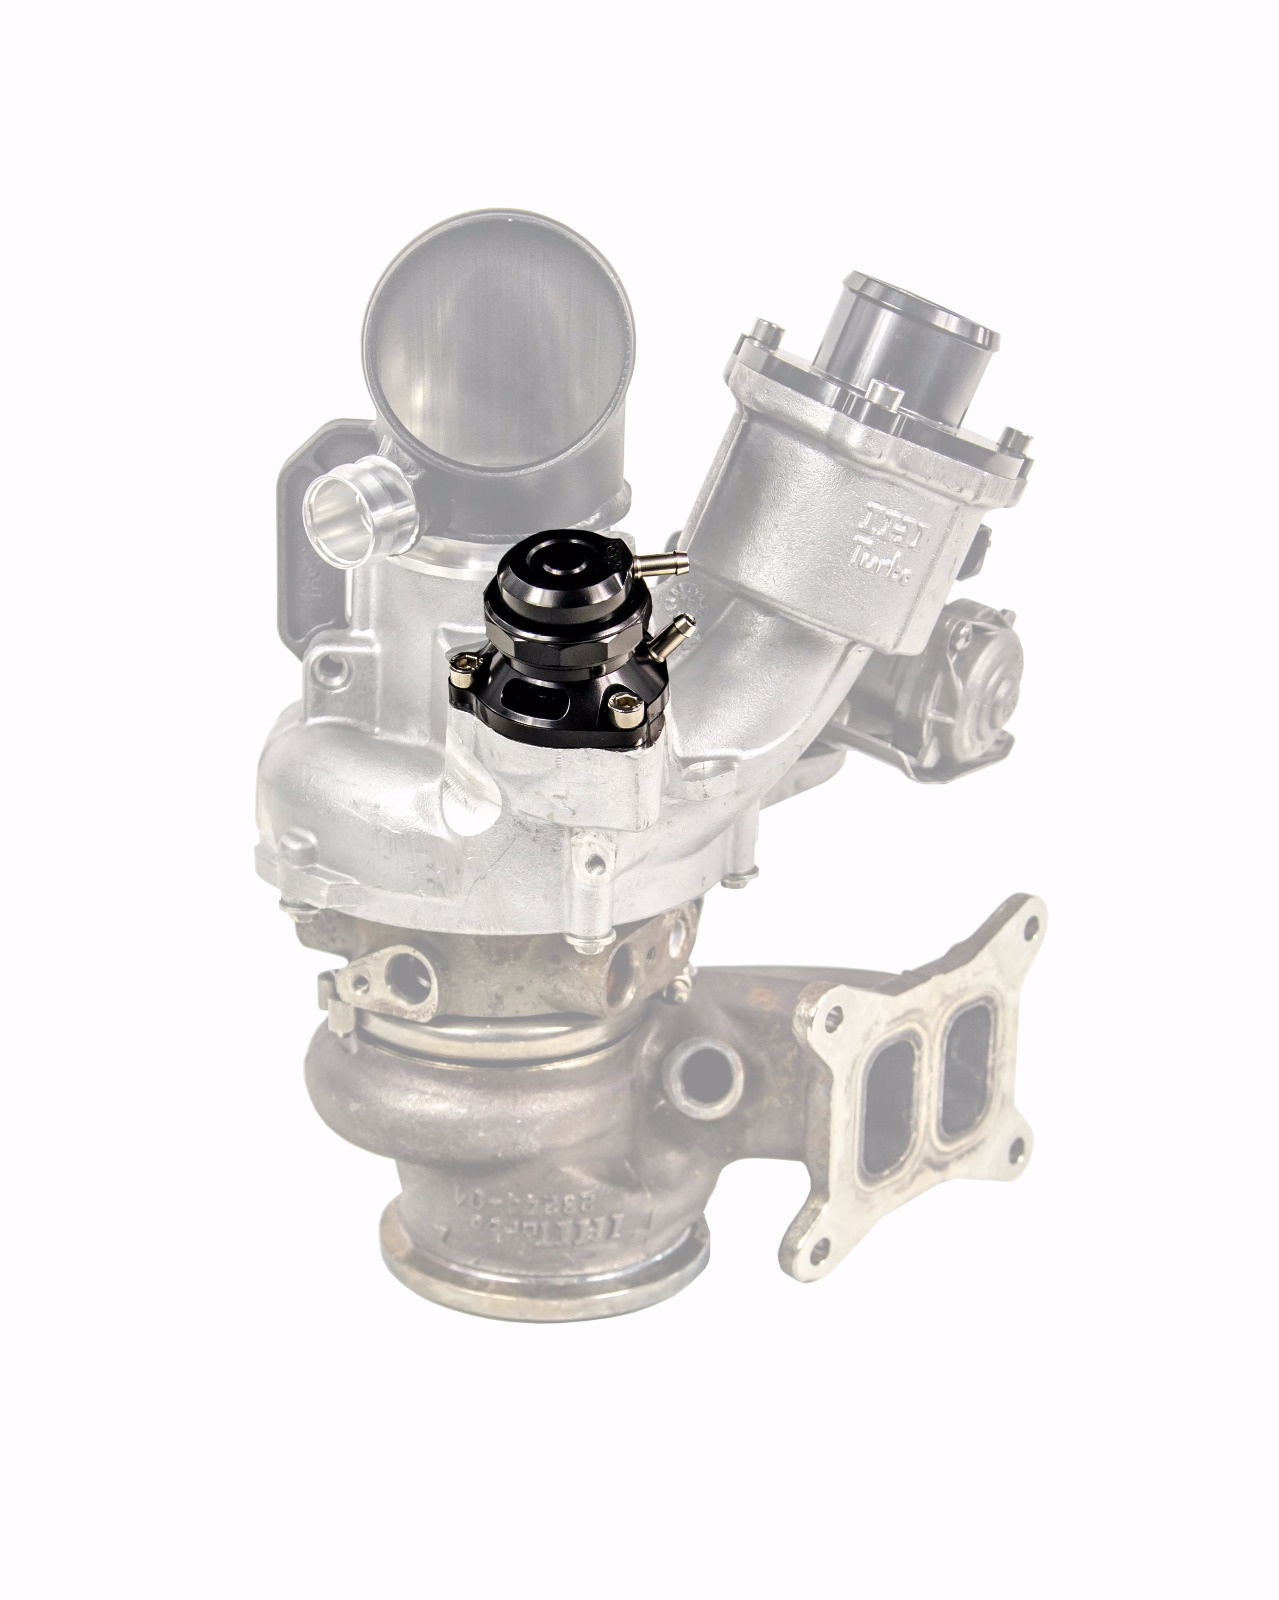 Blow Off Valve and Kit for Audi and VW 1 8 and 2 0 TSI